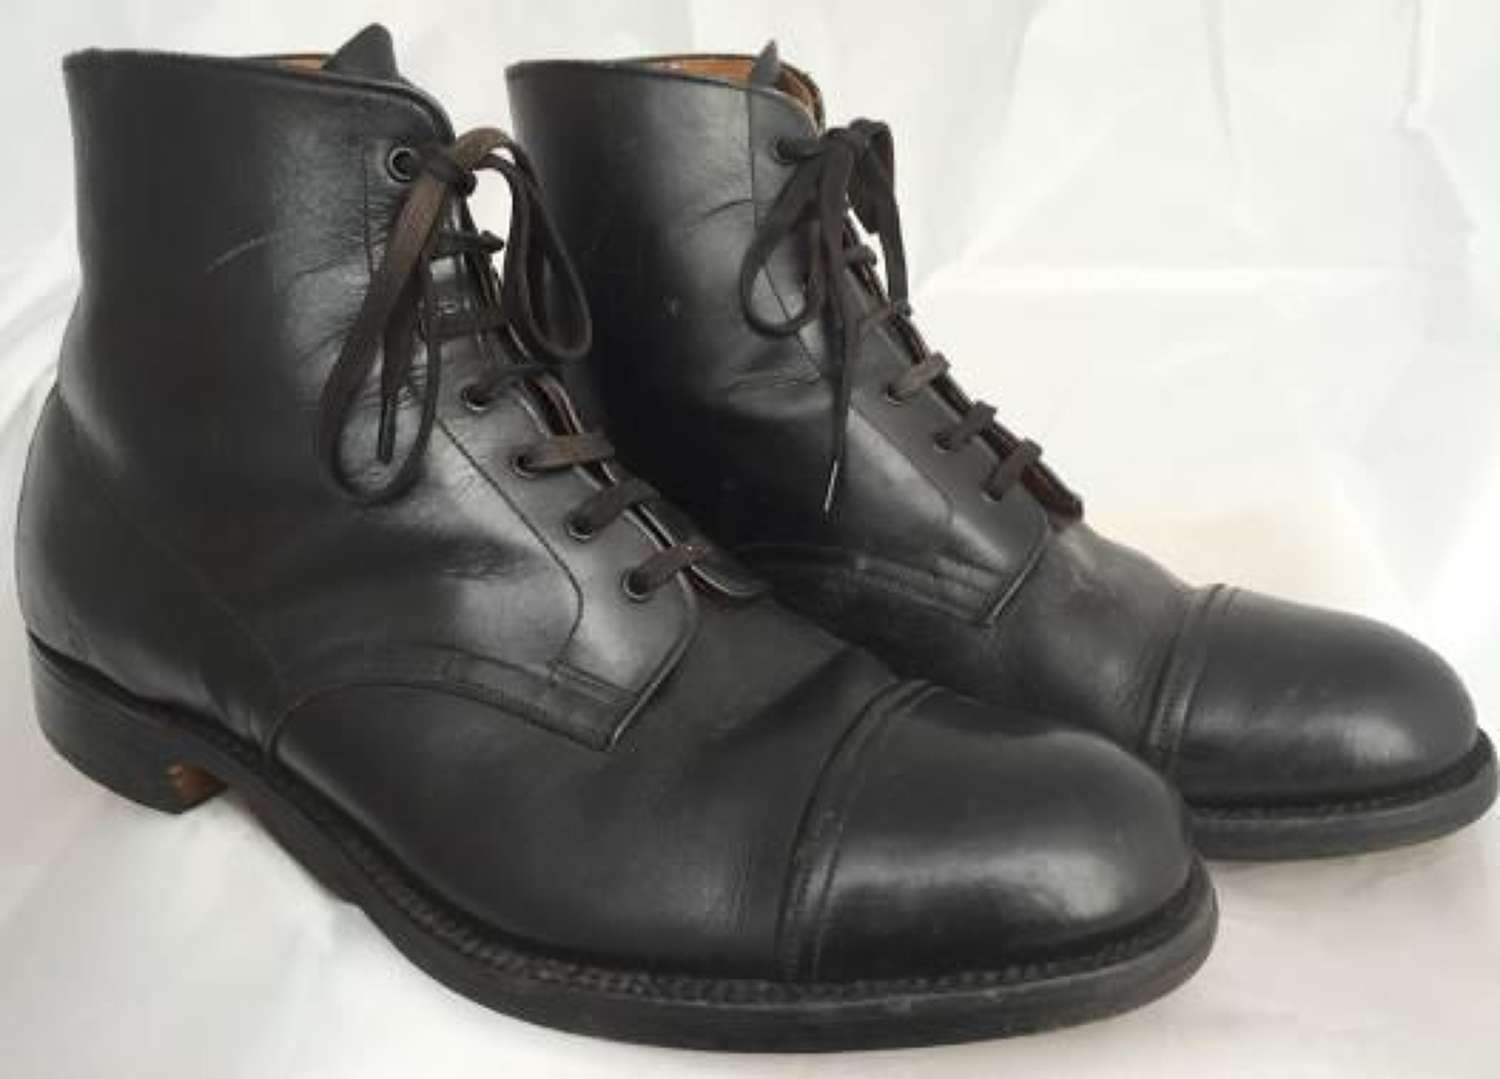 1940s Black leather boots by CWS - Home Guard Boots